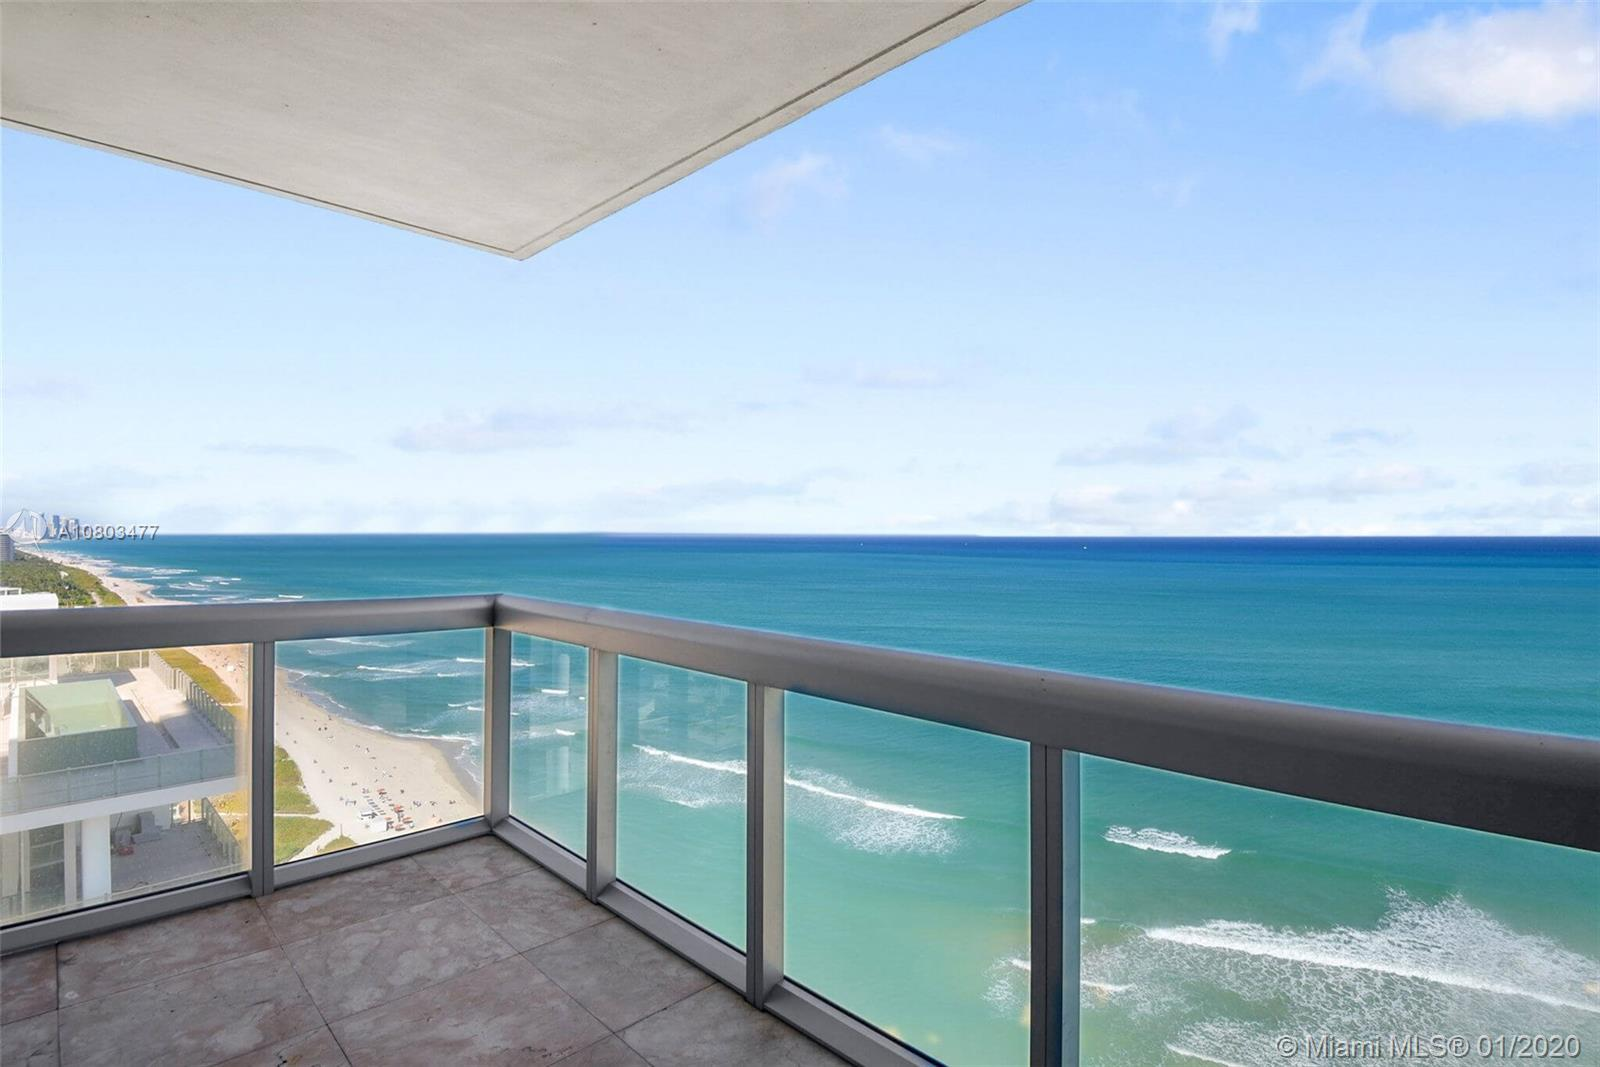 Luxury Living in this Ne Corner unit w/ocean views from all rooms! 2nd and 3rd bedroom also have bea